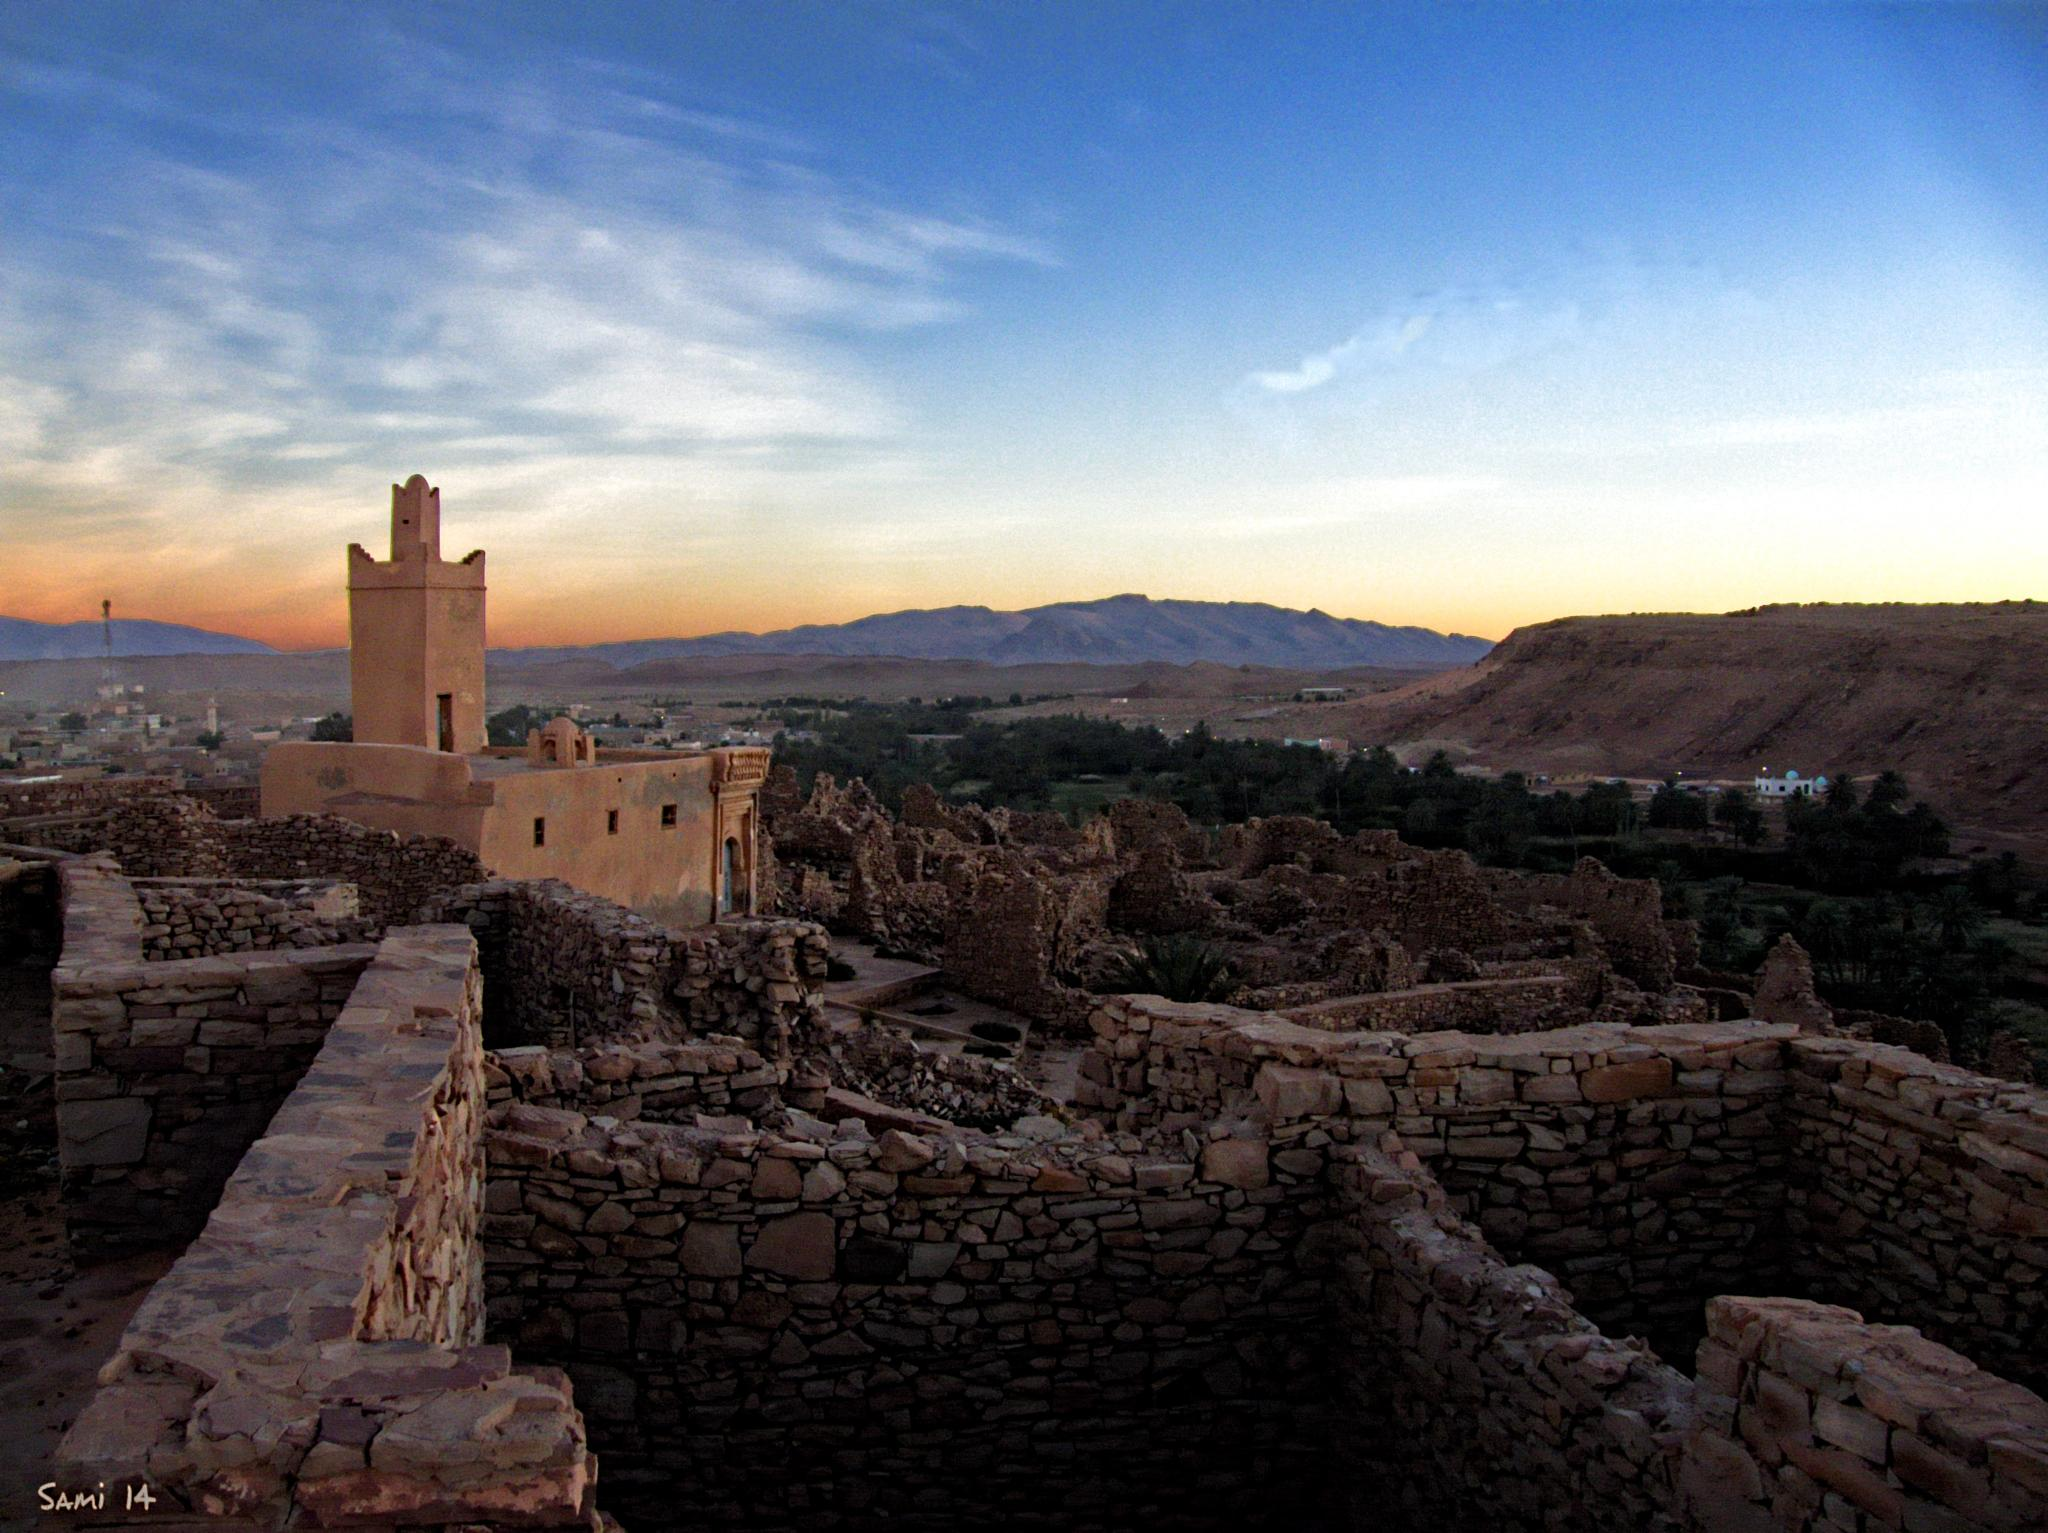 Sunset over the ksar. by Samir Sami